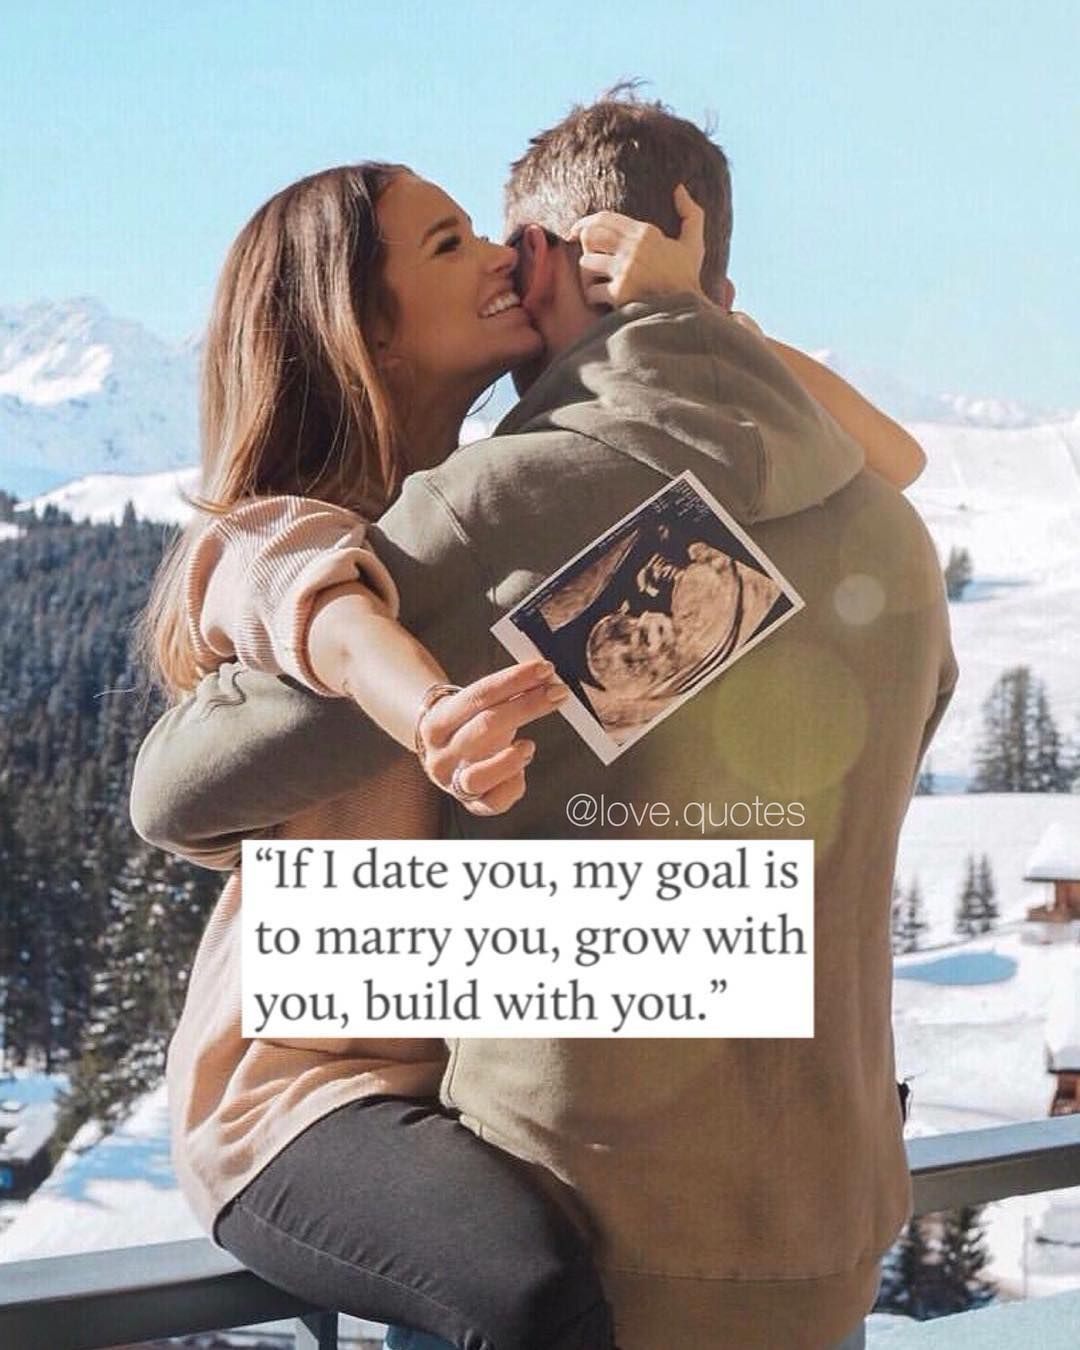 Cute Romantic Love Quotes For Her Gf Wife With Images Best